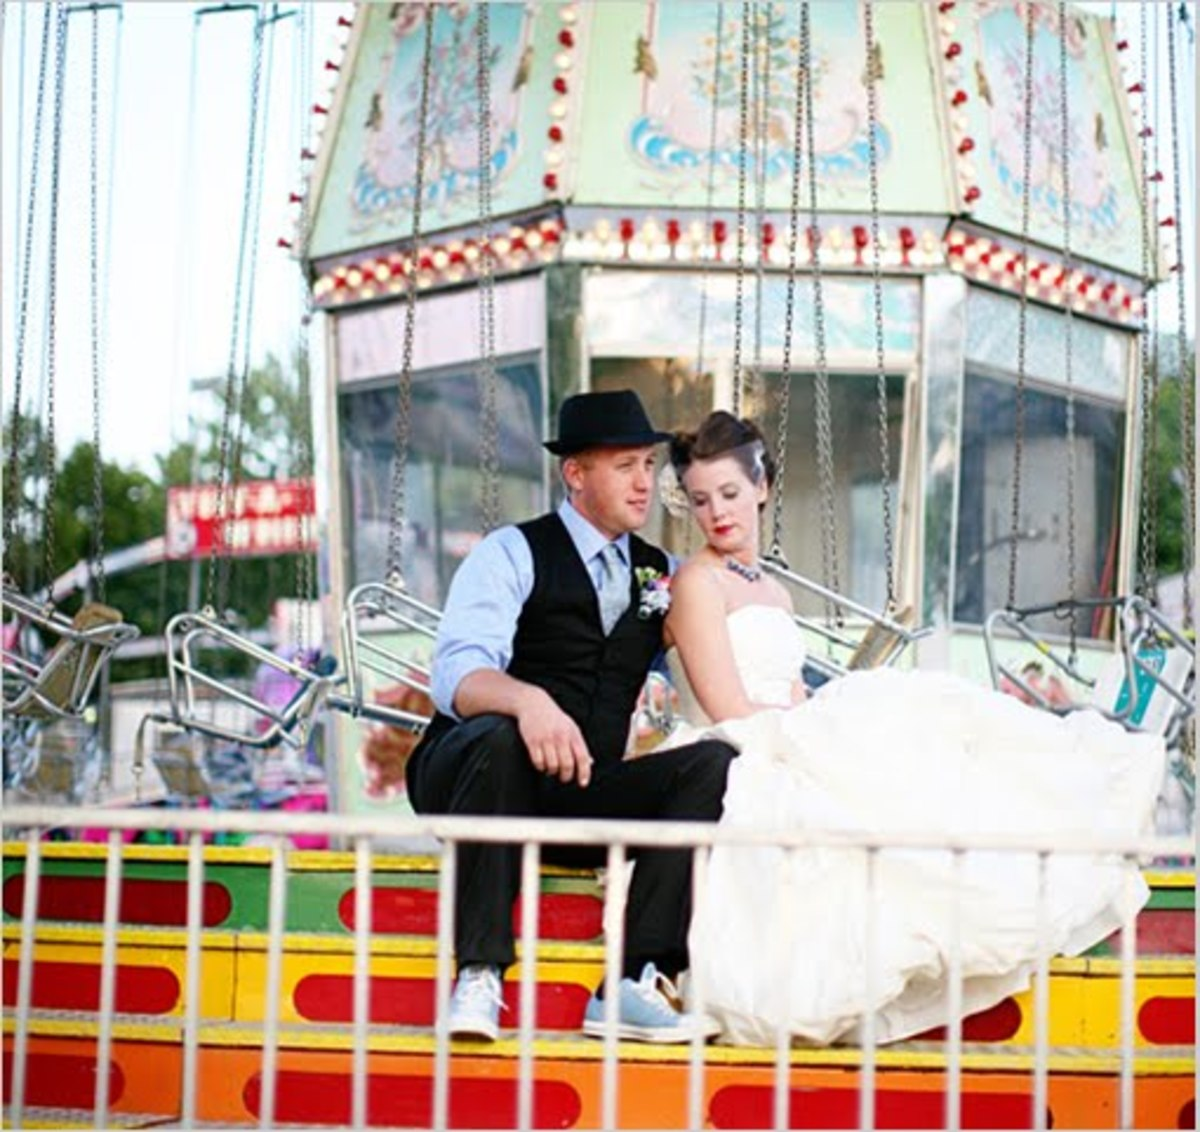 Carnival Themed Wedding: Fun With Vintage & Rustic Style